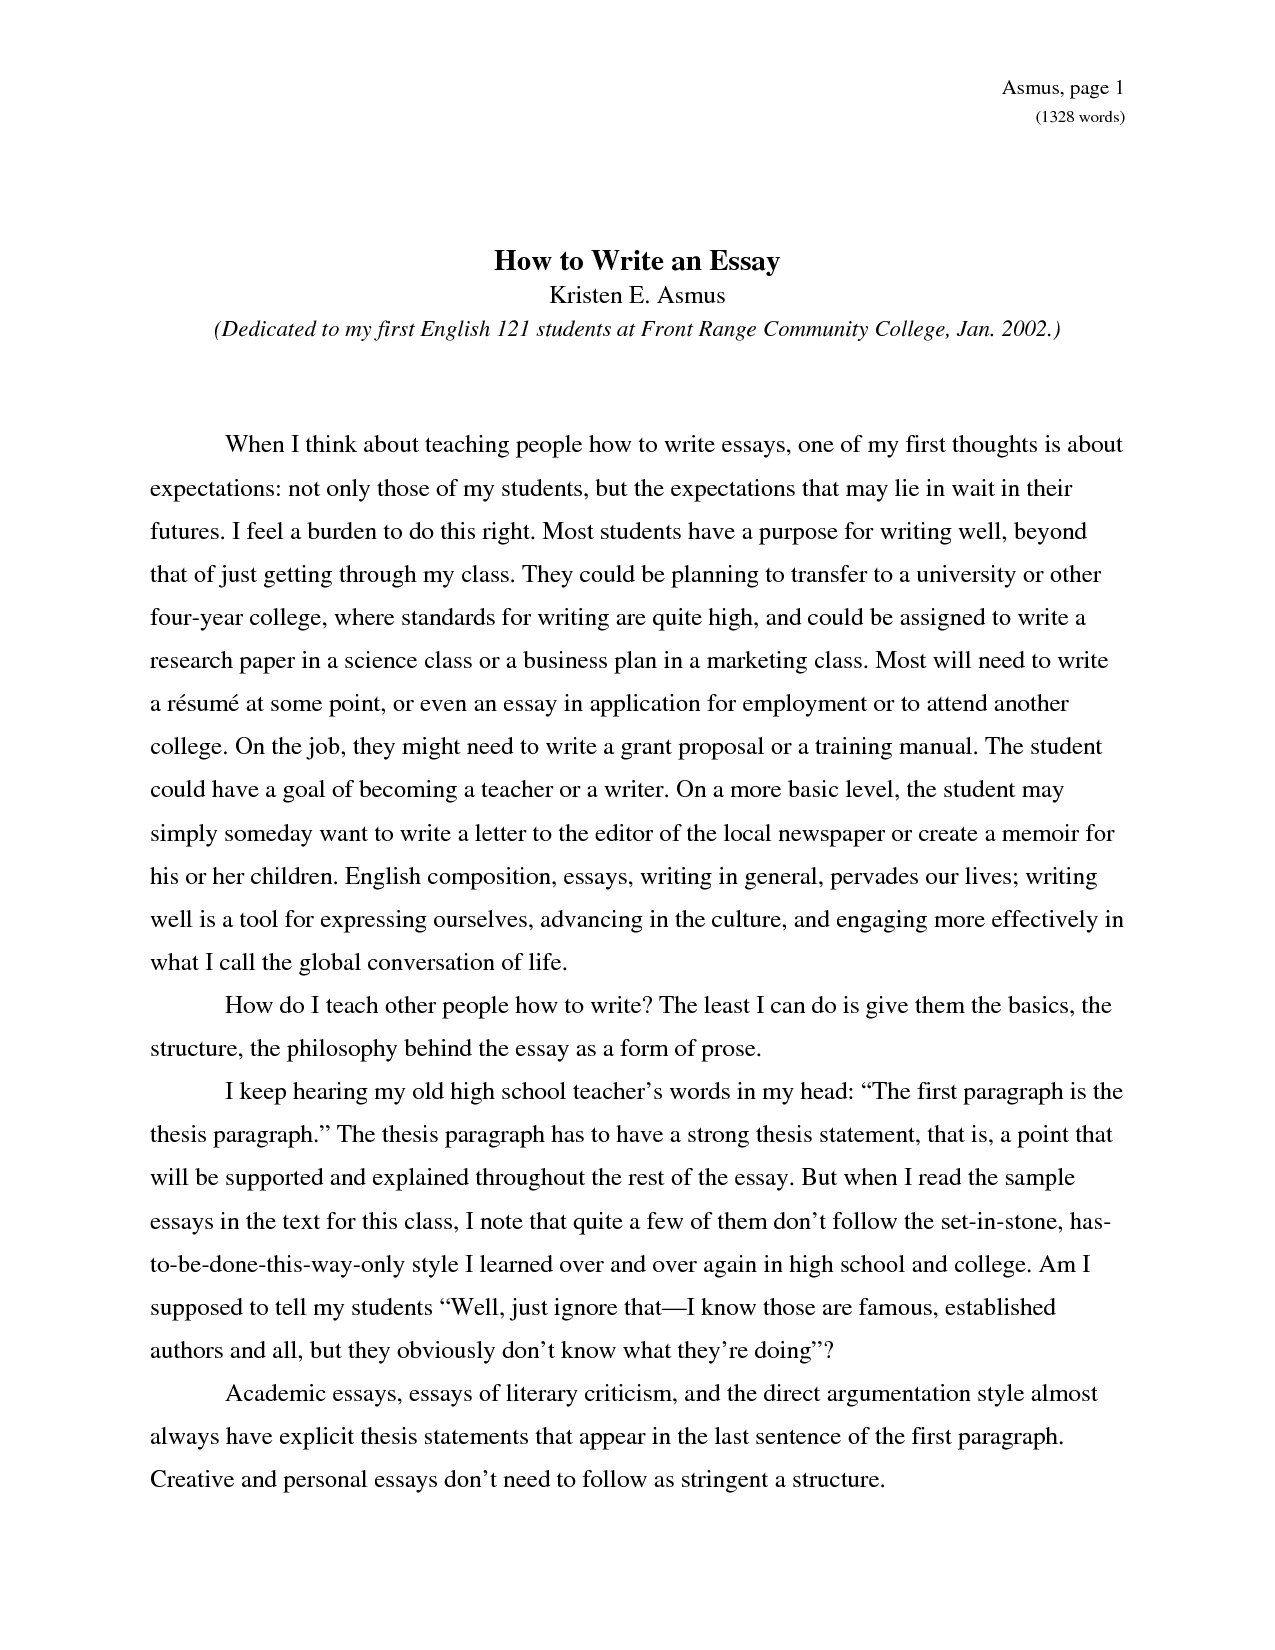 writing an essay in college Learn how to write a college essay that sets you apart learn how to write a college essay that will set you apart  crafting an unforgettable college essay.